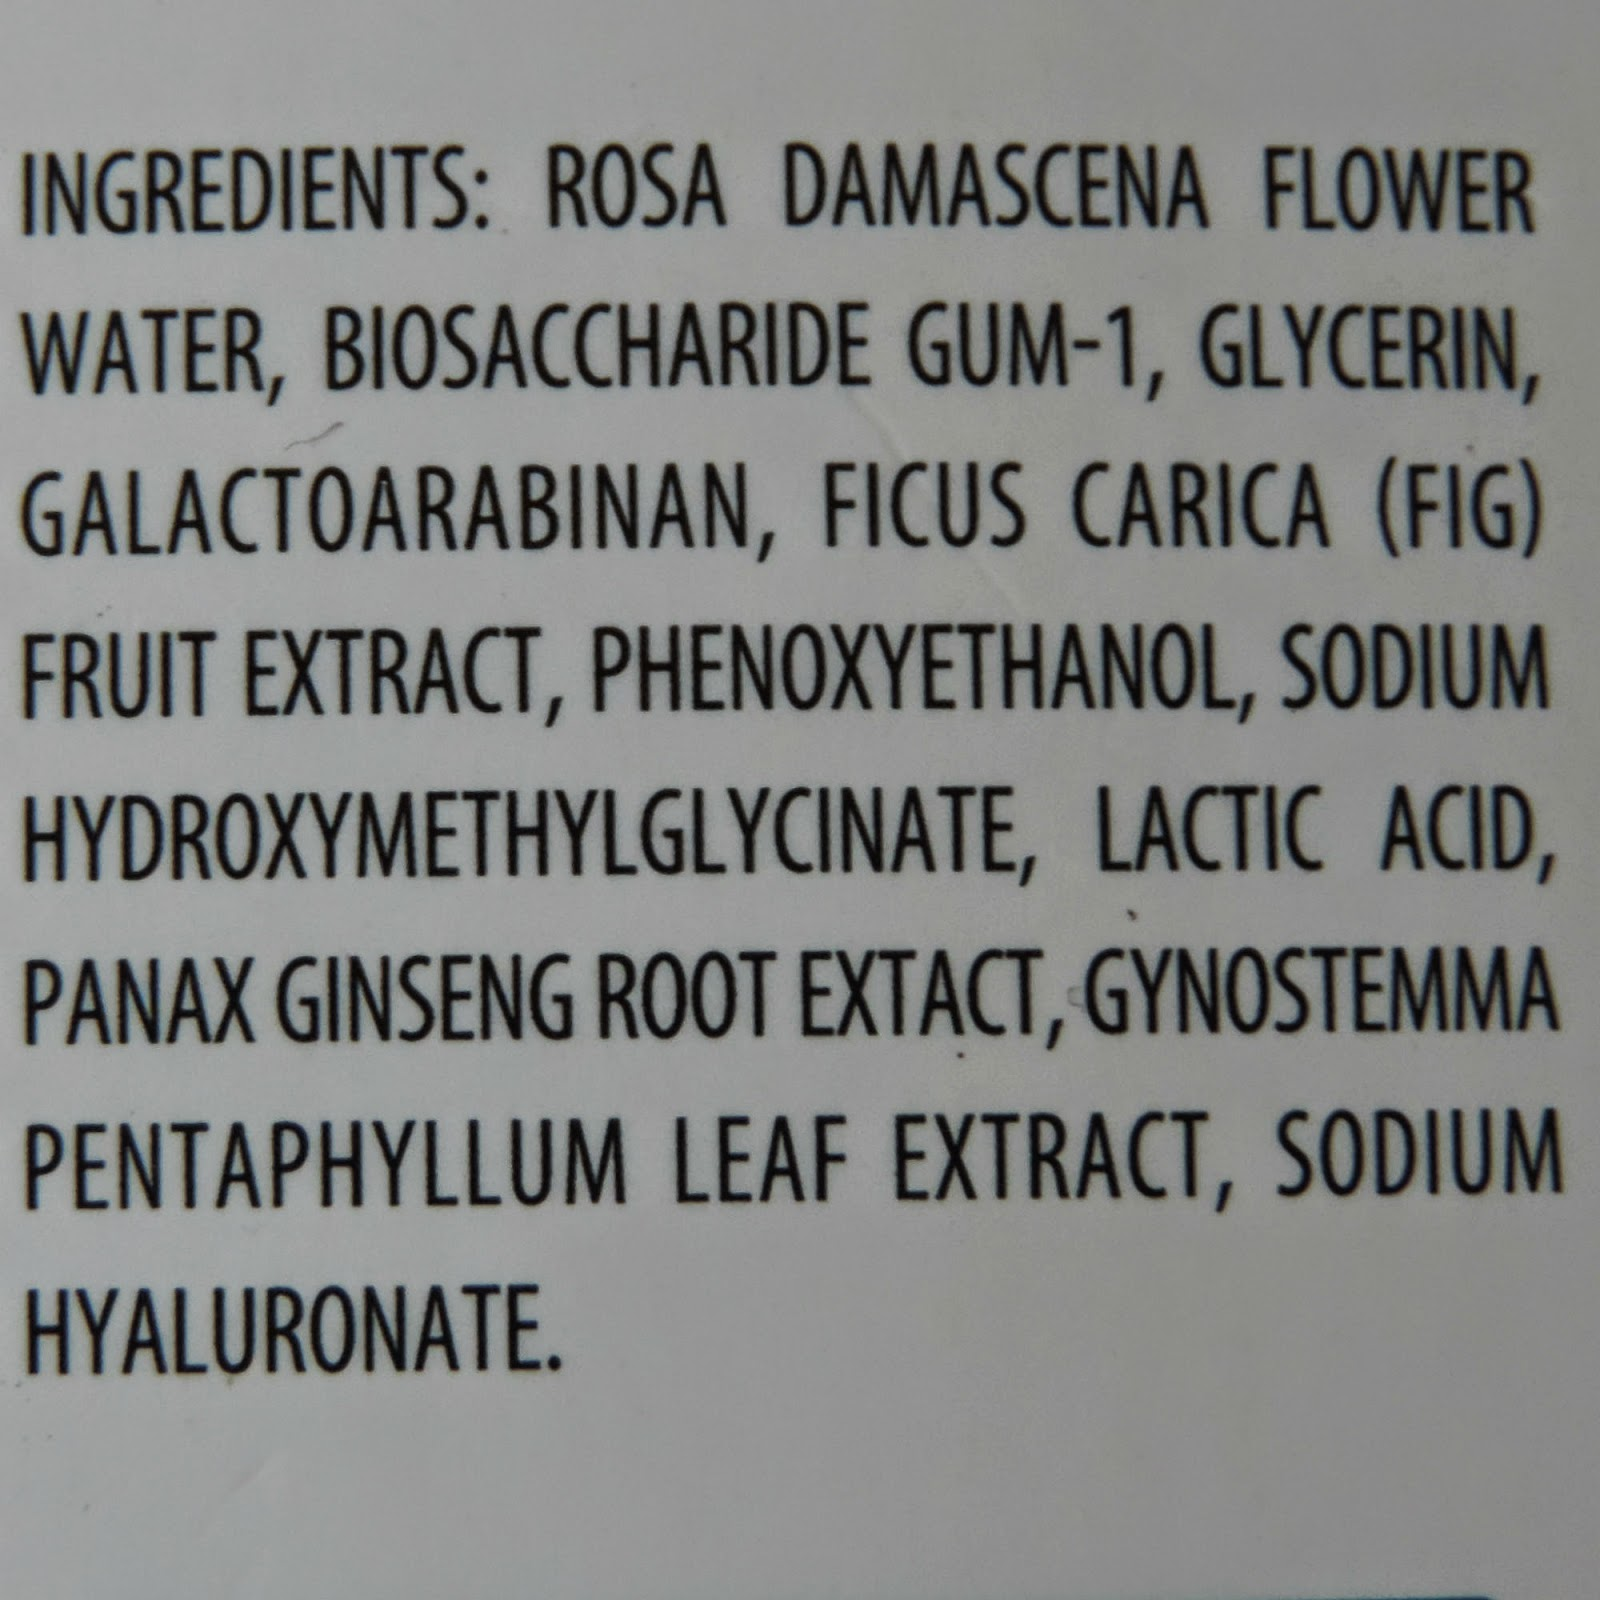 REN Tonic Moisture Mist Ingredients List